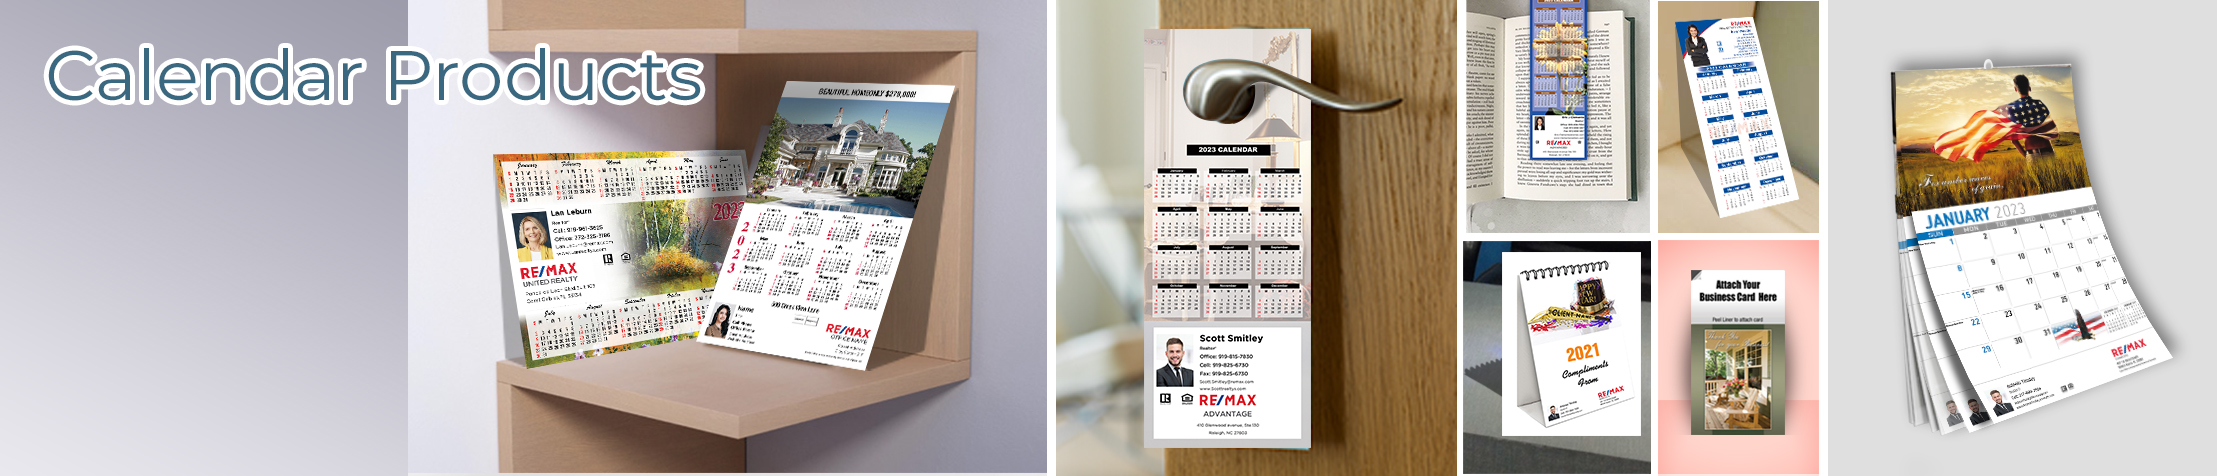 RE/MAX Real Estate Calendar Products - RE/MAX  2019 calendars, magnets, door hangers, bookmarks, tear away note pads | BestPrintBuy.com